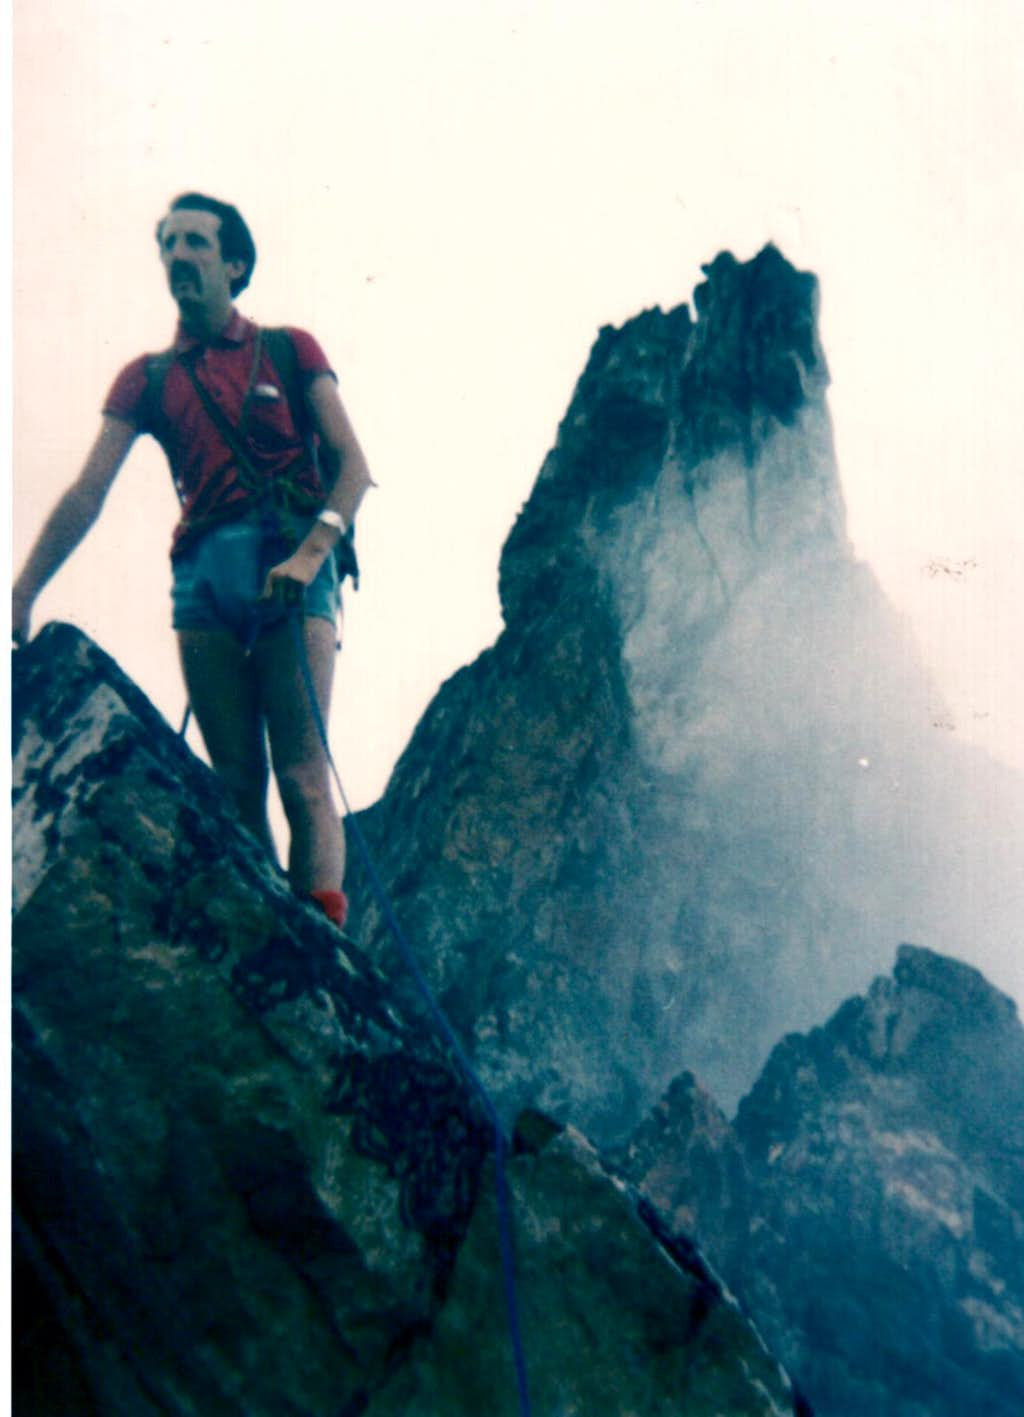 EMILIUS's SW Buttress, First Ascent 1974: Descendig from Comboé's TRIDENT